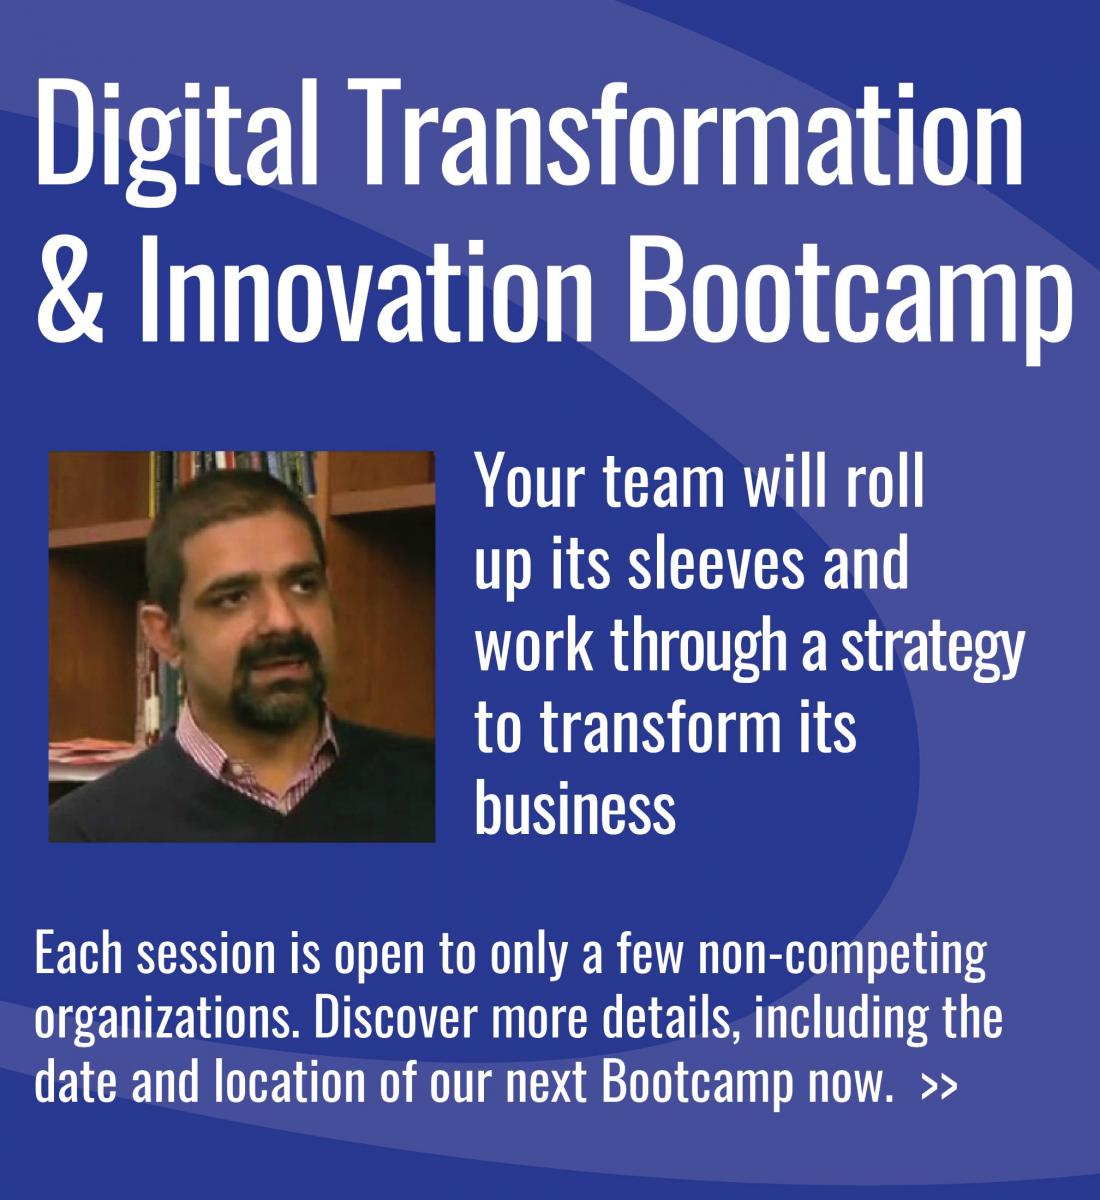 Digital Technology Bootcamp